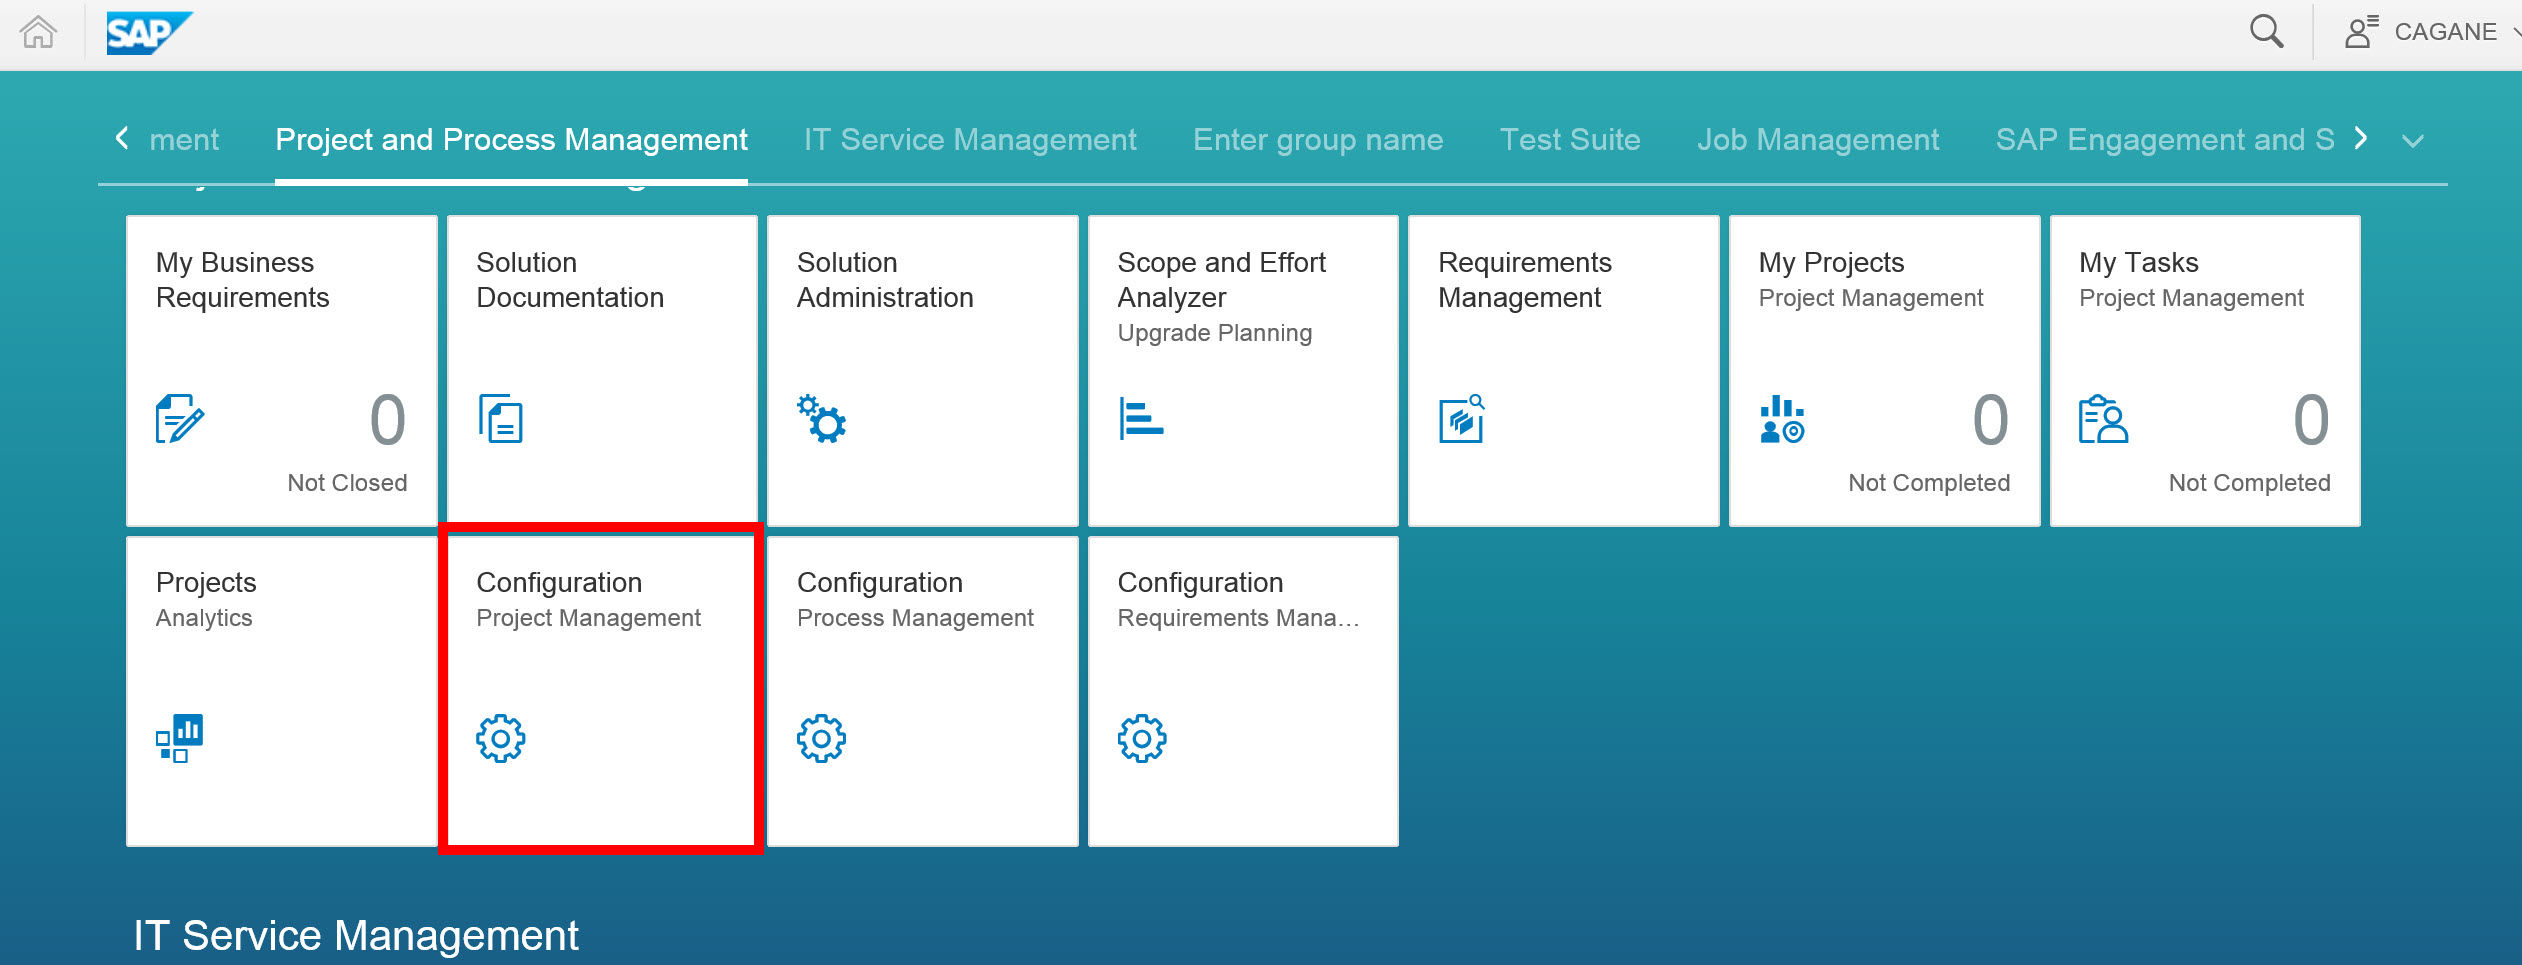 Project management in a nutshell for sap solution manager 72 itppm fiori launch pasg xflitez Image collections